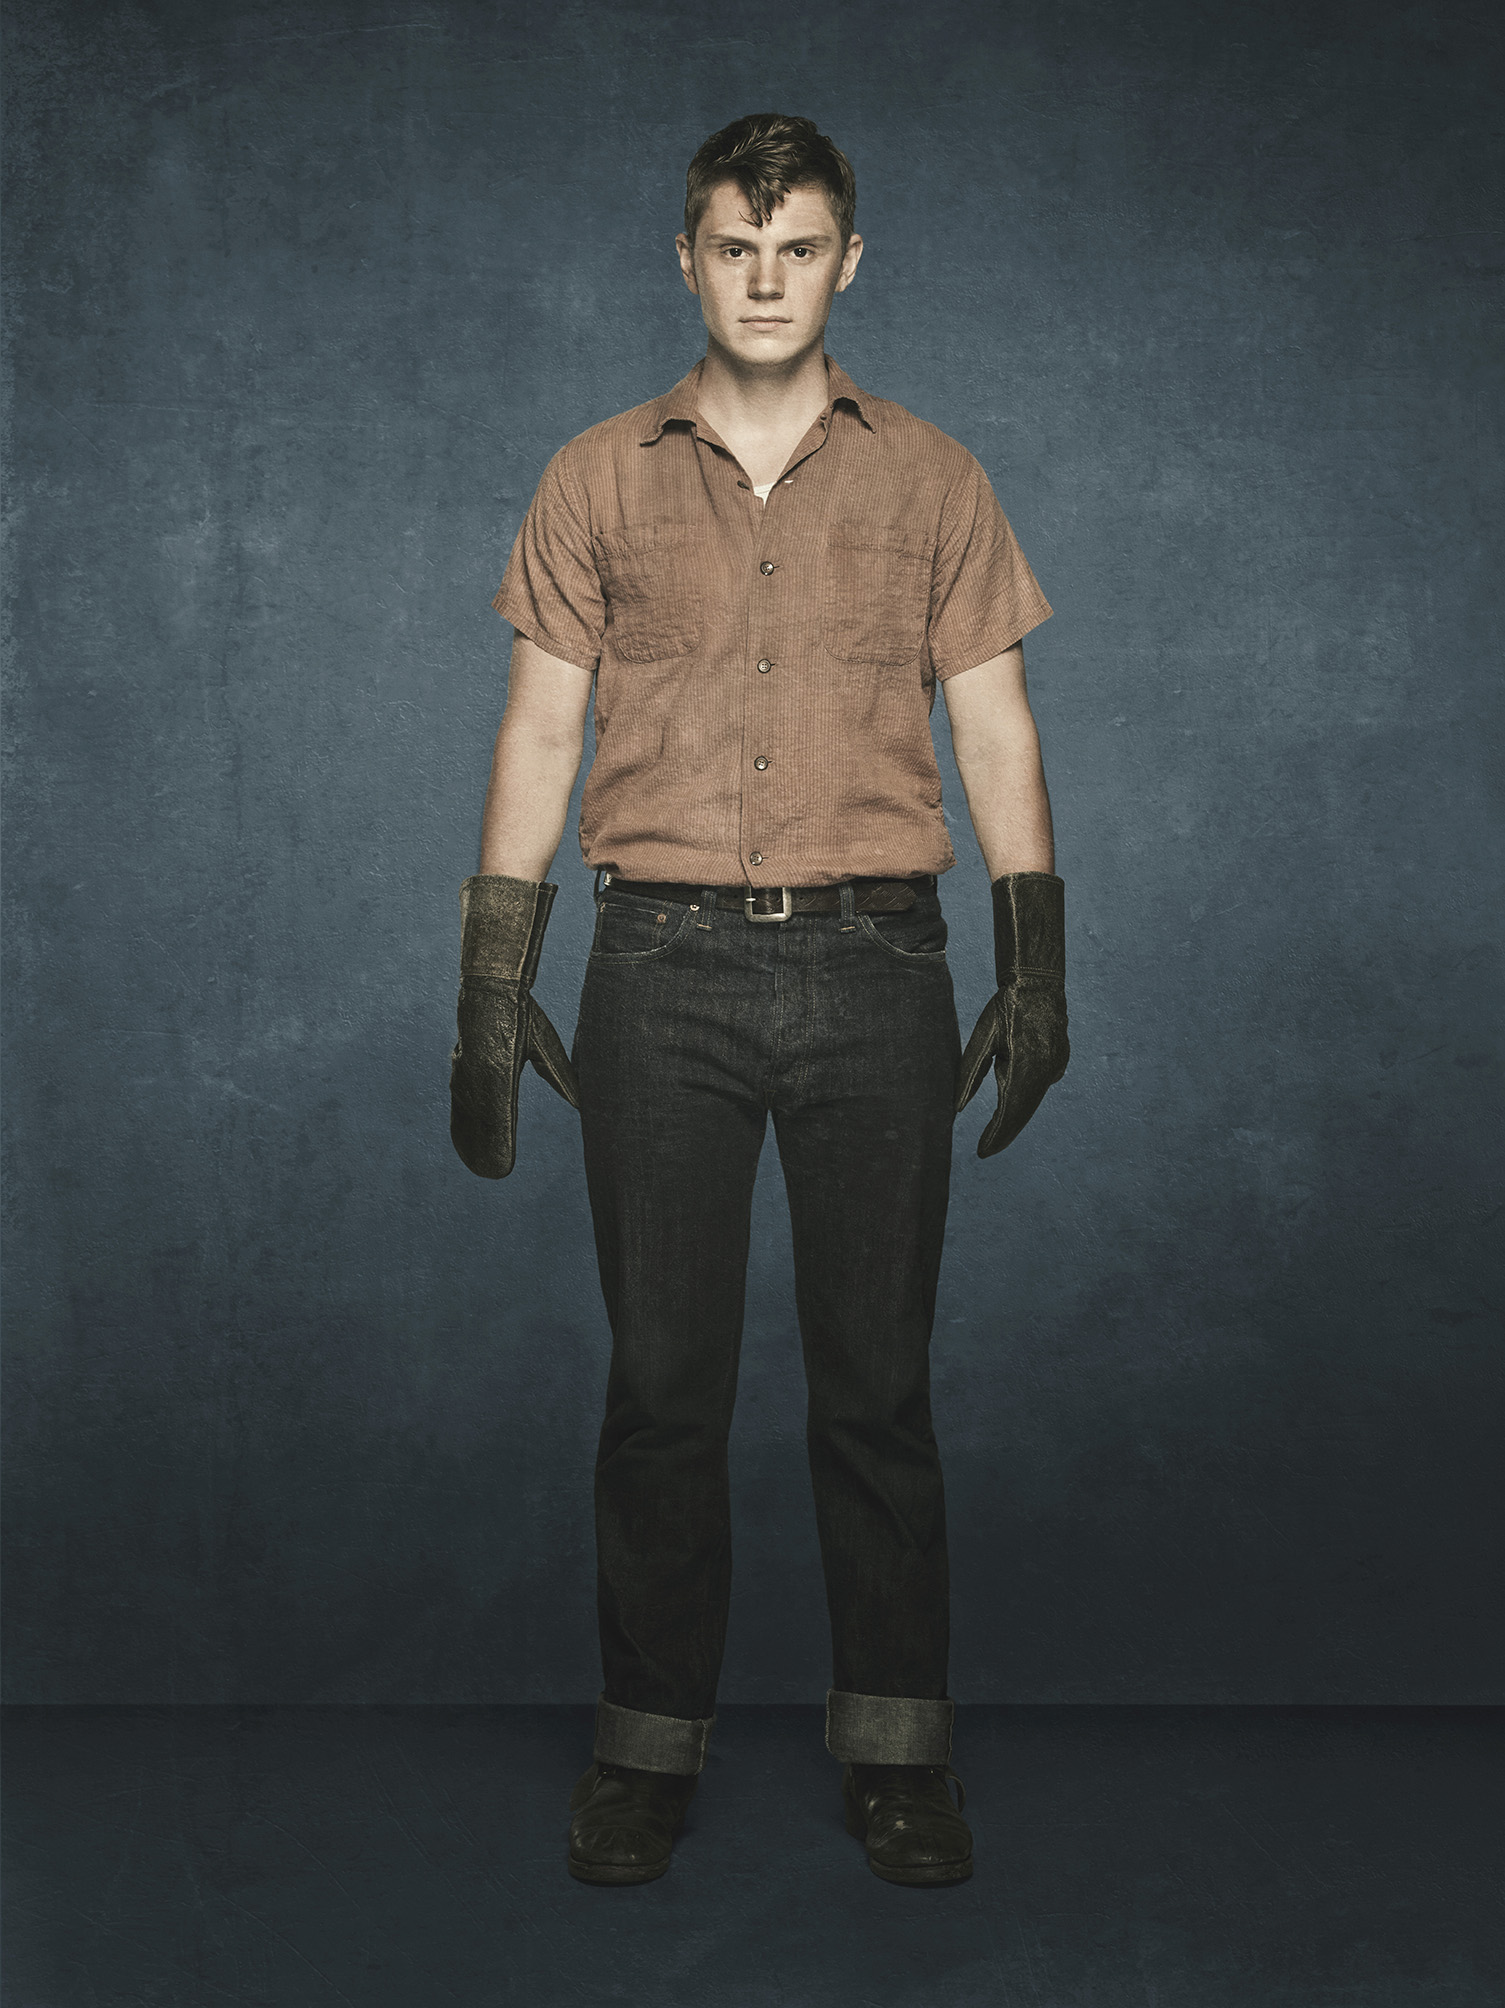 Jimmy Darling official picture - American Horror Story Photo (37675260) - Fanpop